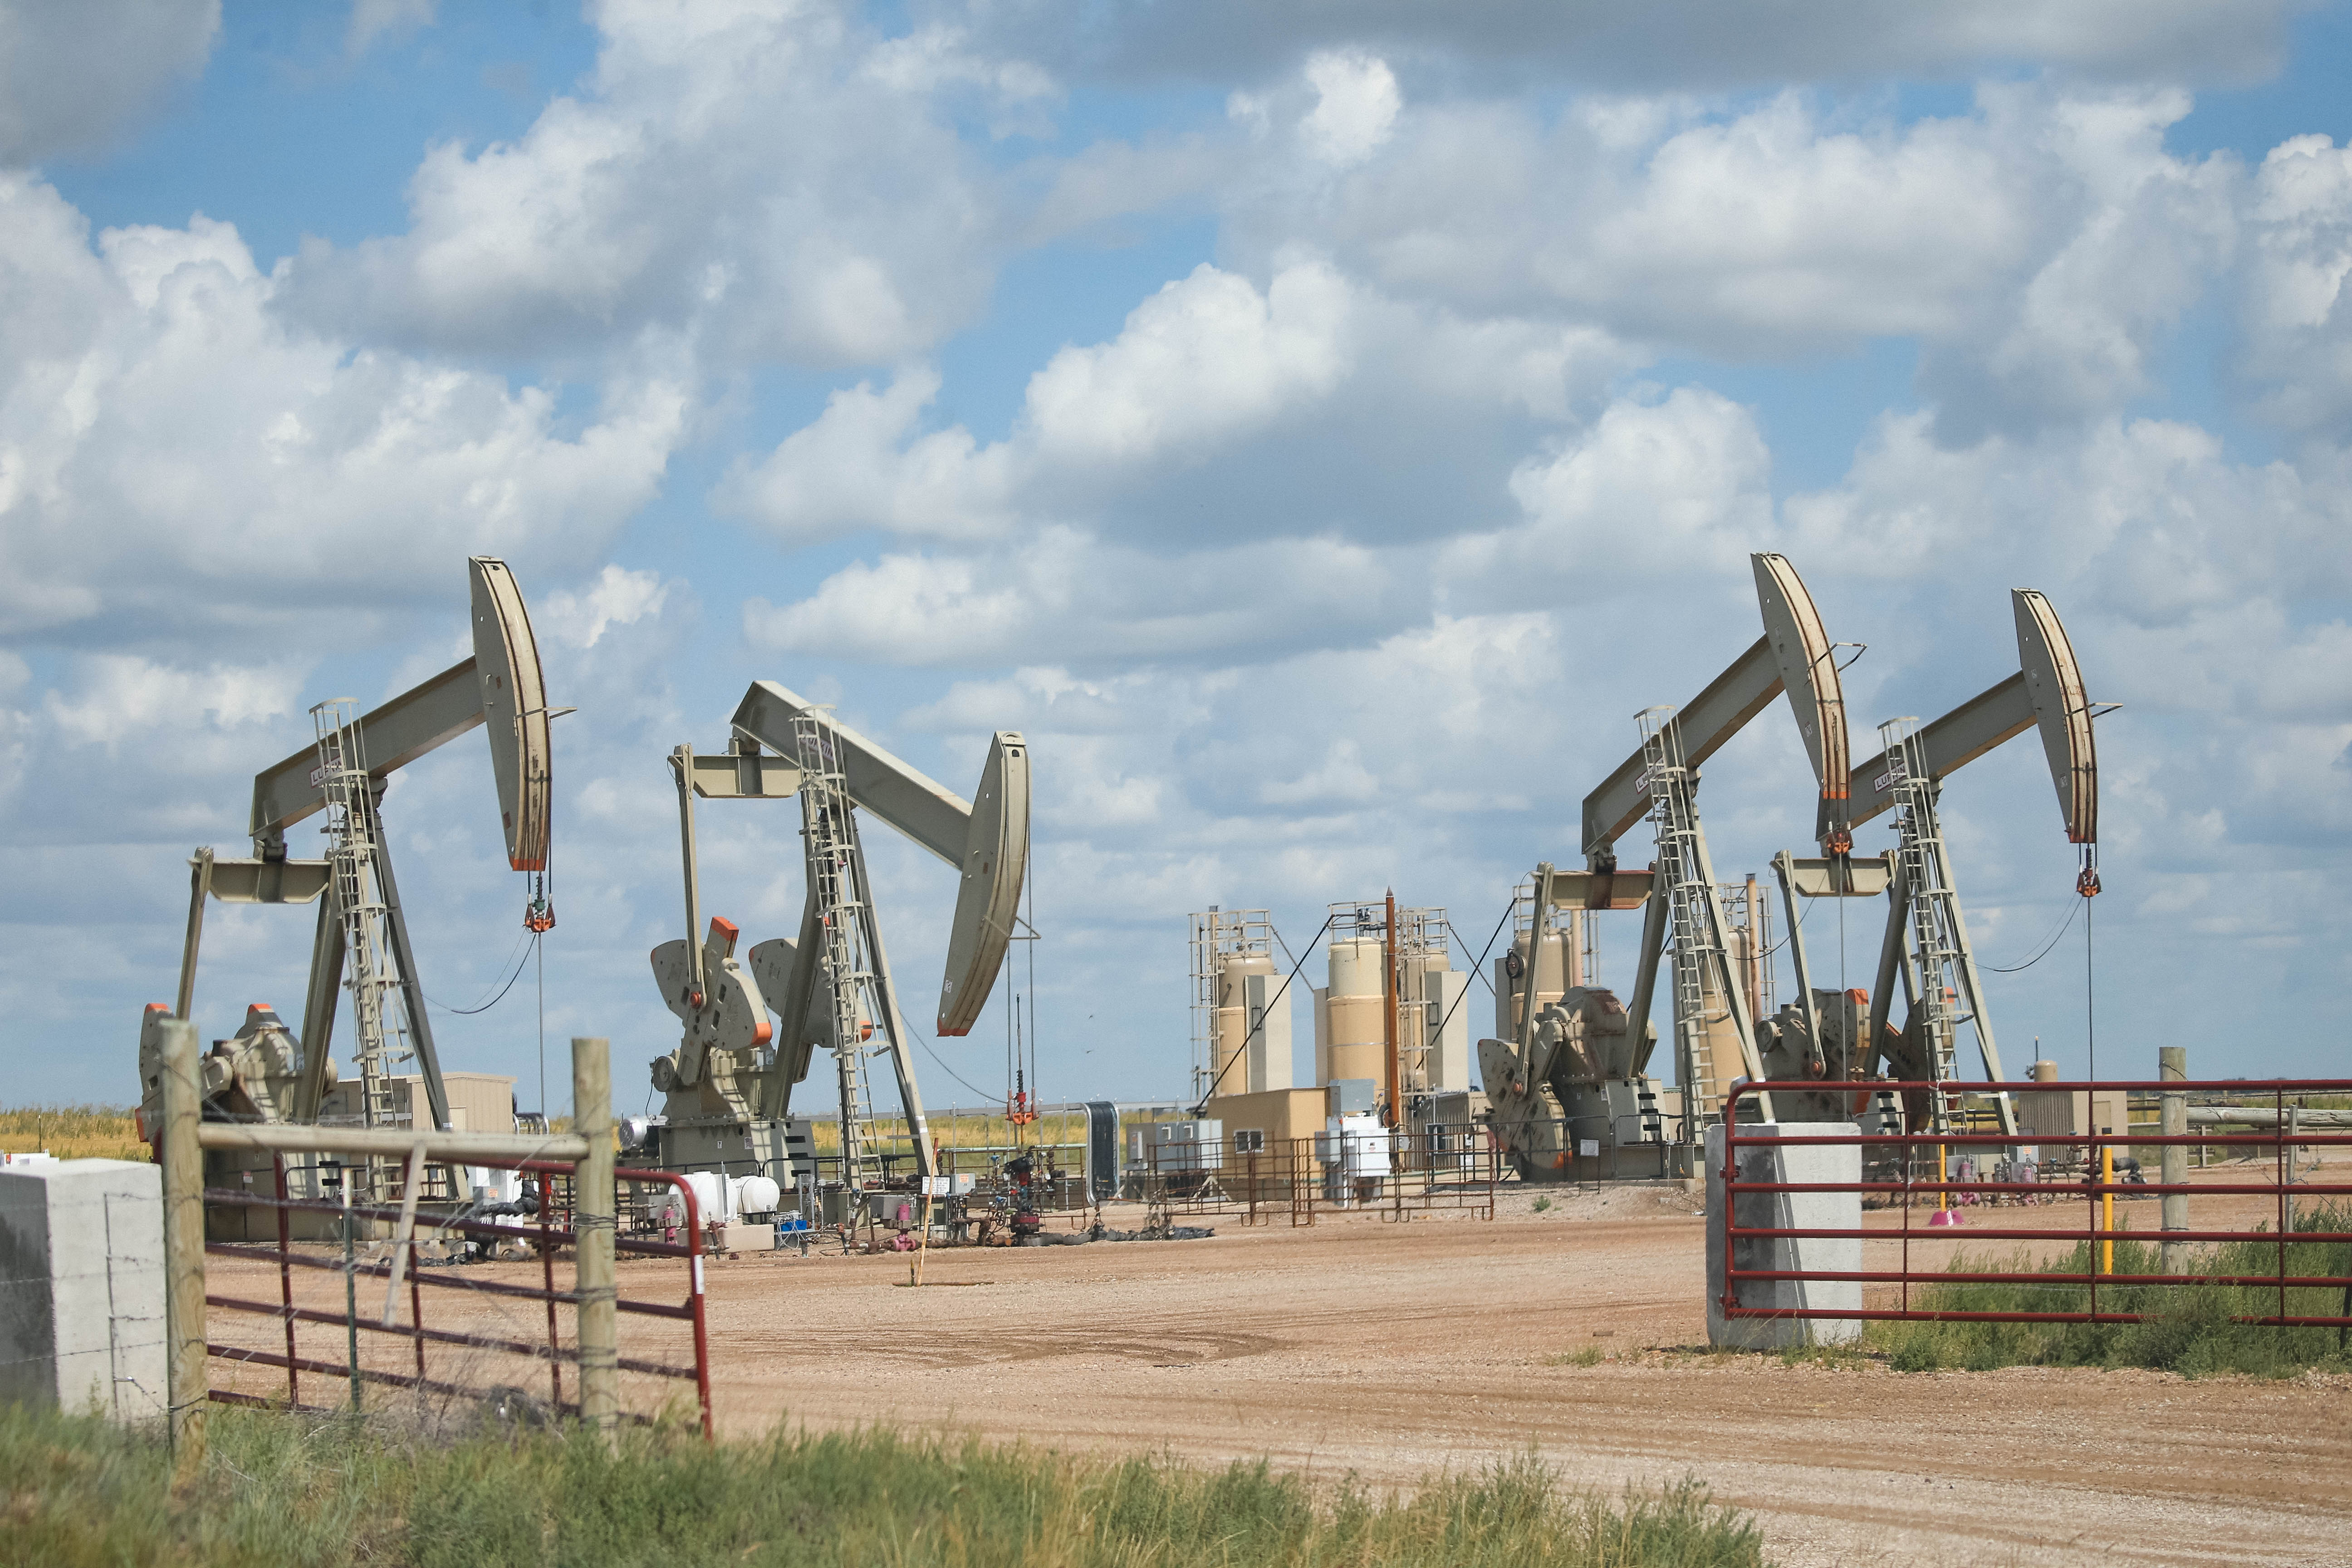 The landscape in Williston, North Dakota is spotted with oil rigs and newly constructed roads. Williston is in the Bakken region, a prolific oil play that has more than 400 injection wells.